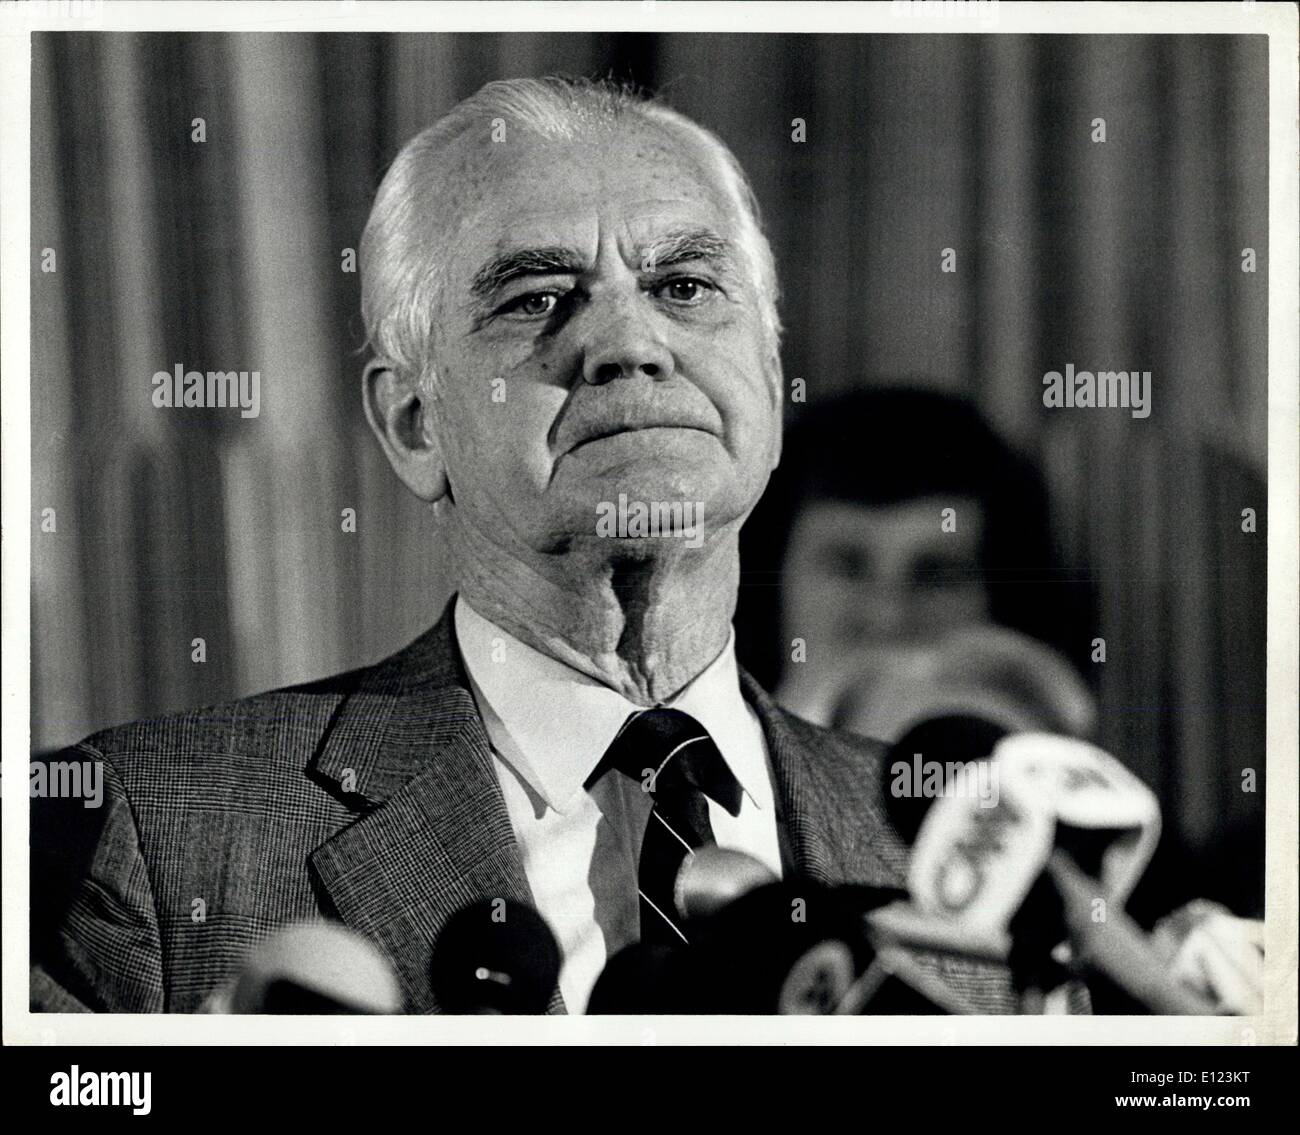 Feb. 18, 1985 - Feb. 18th 1985 New York, Westmoreland Newsconference: General William C. Westmoreland, after 18 weeks of testimony in Federal DIstrict court in Manhattan, ended his libel suit against CBS yesterday just days before lawyers for both sides would have begun their final summations to the jury, bringing to a close the libel suit brought by the general after the 1982 airing by CBS of the Documentary the uncounted enemy: A Vitman deception'' - Stock Image